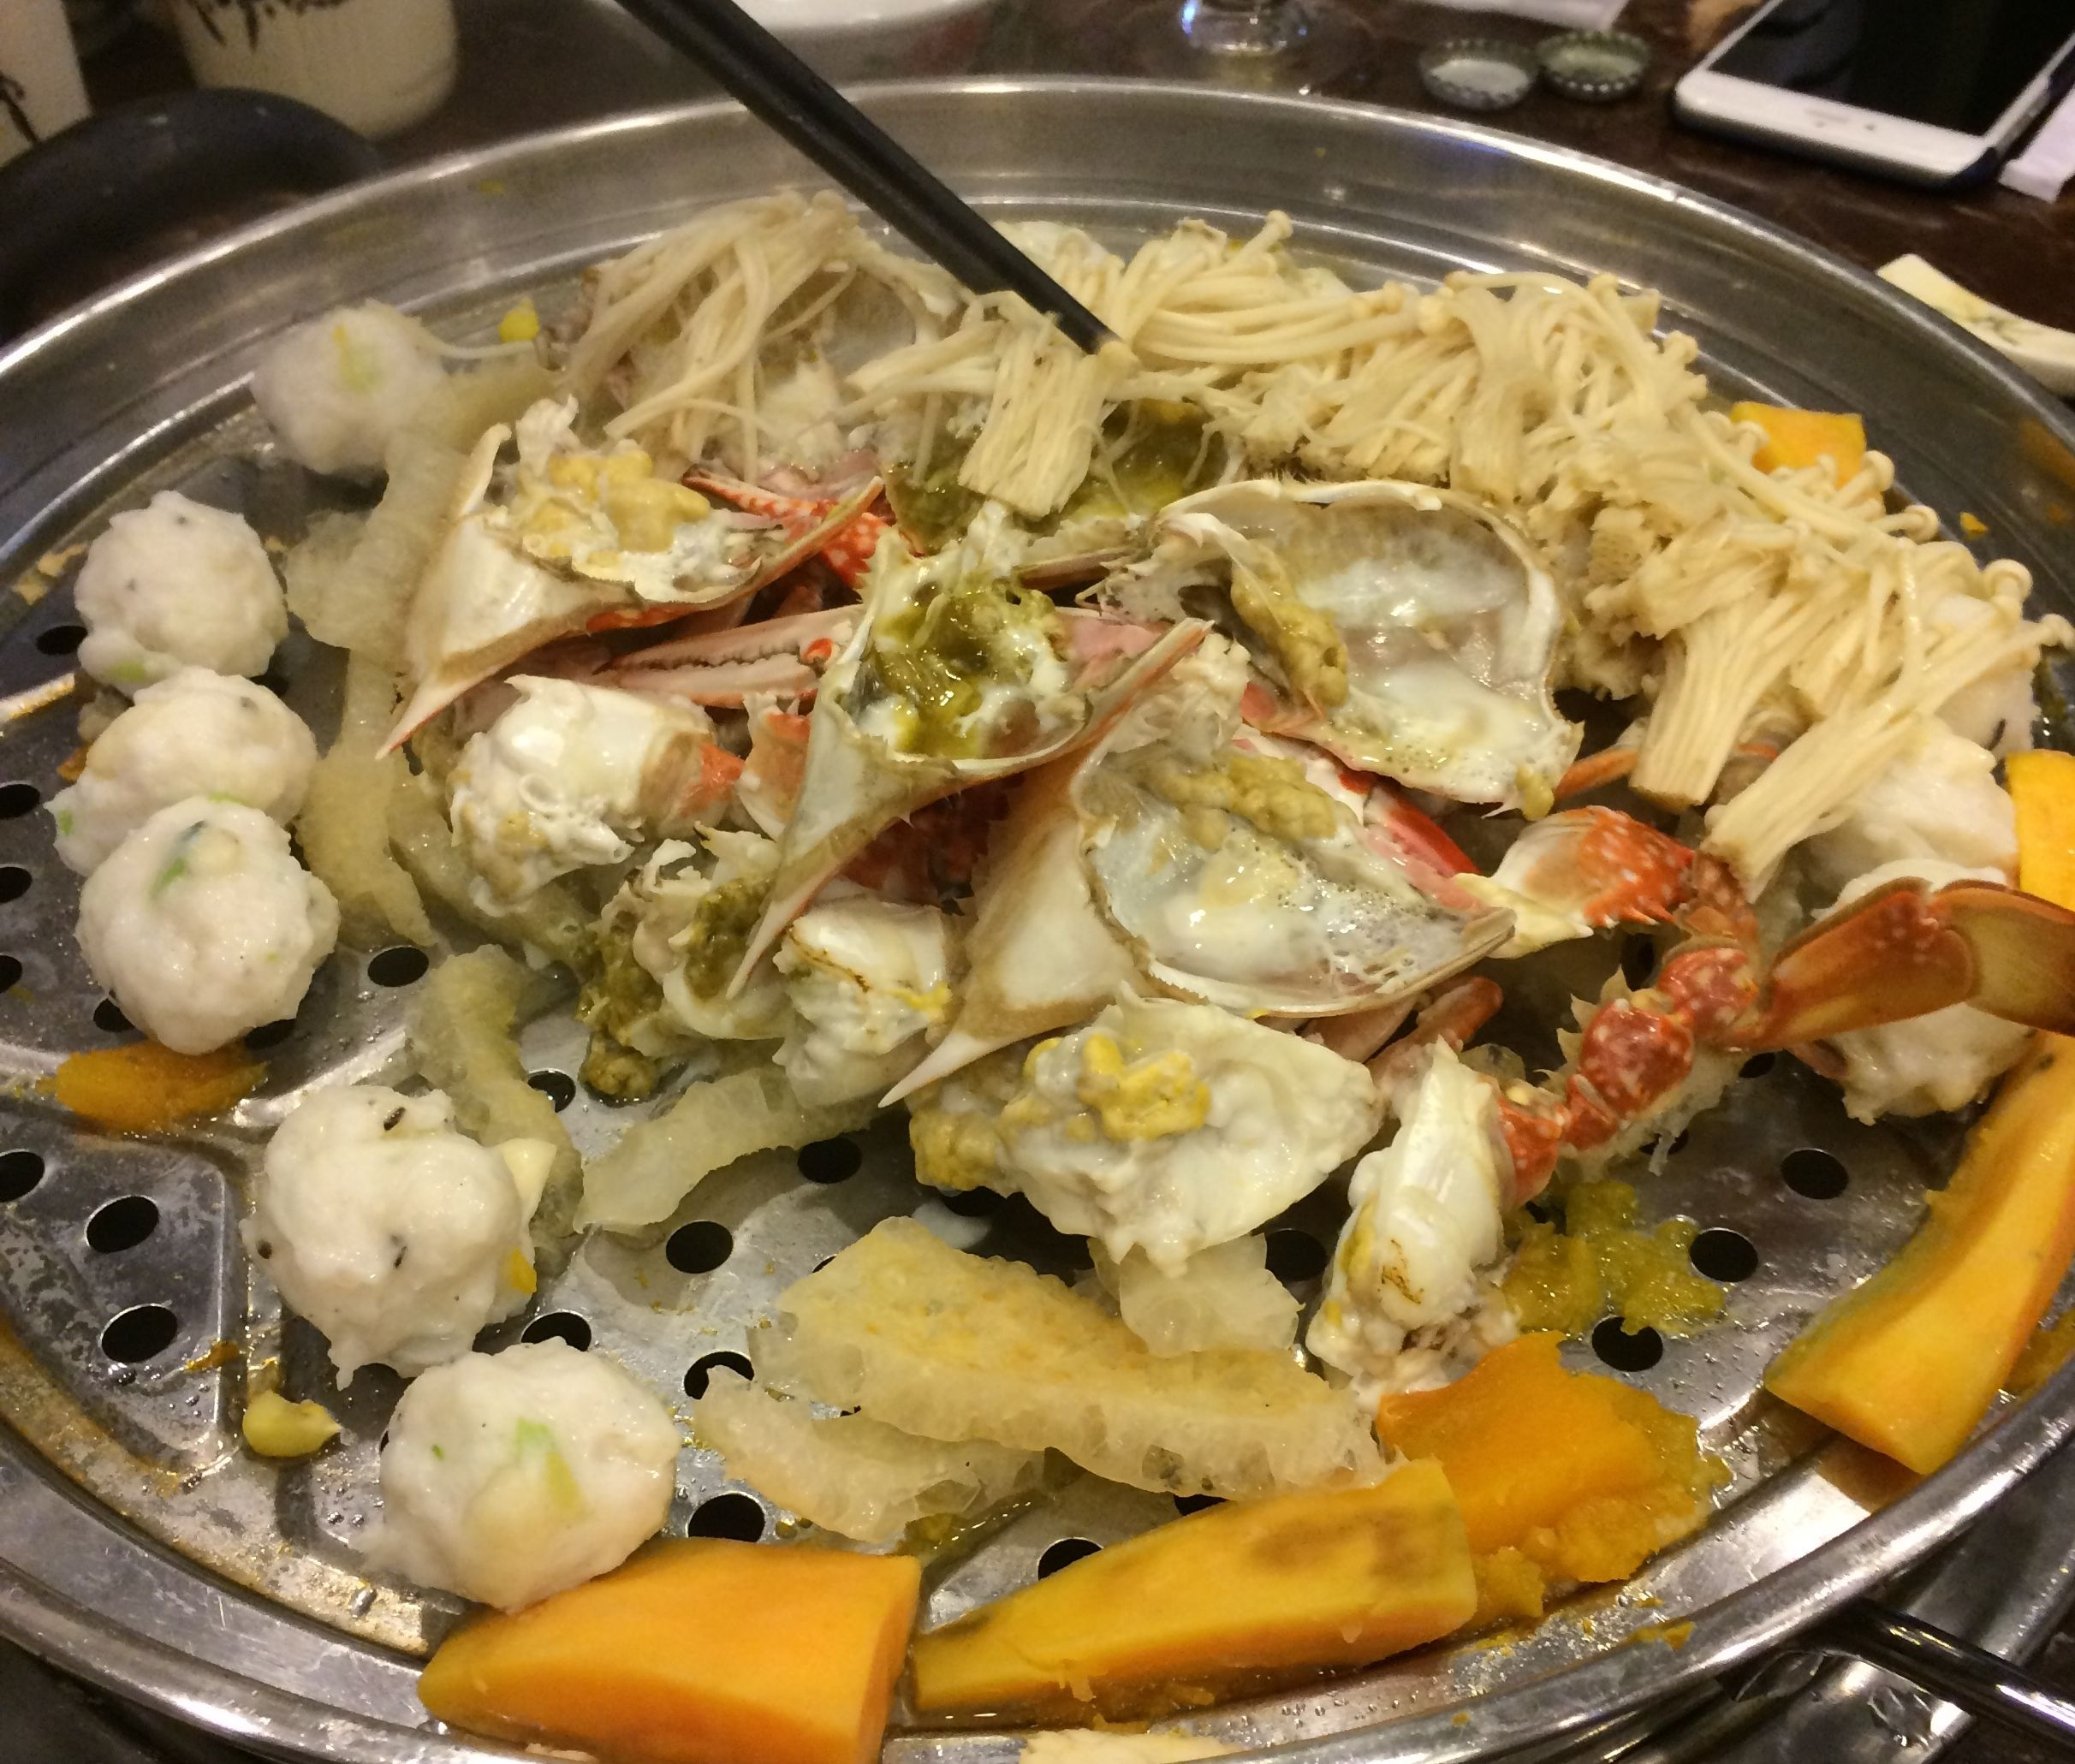 Steamed hotpot was a trending search in 2015